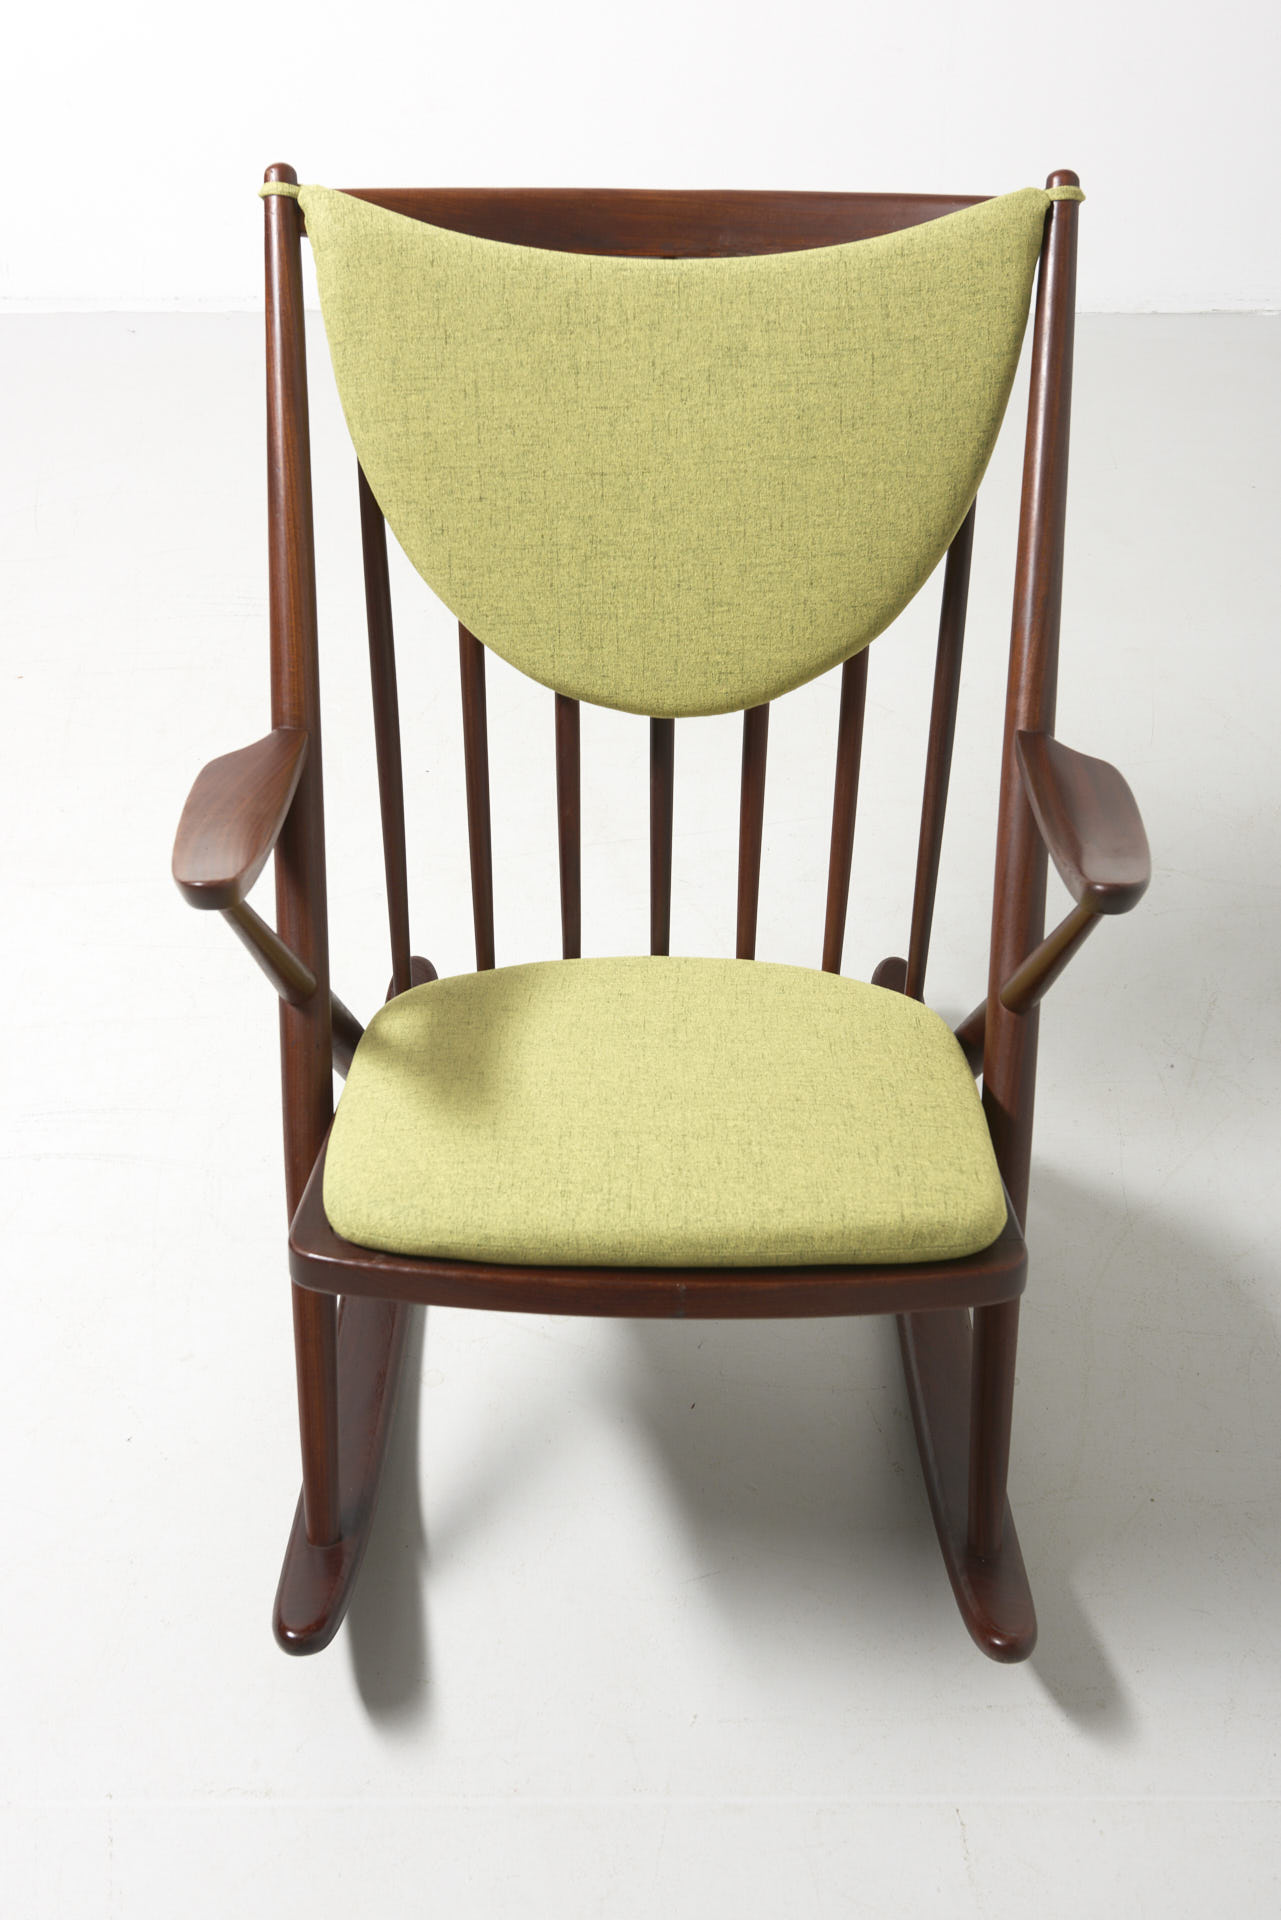 A Rocking Chair For Bramin Frank Reenskaug Archive